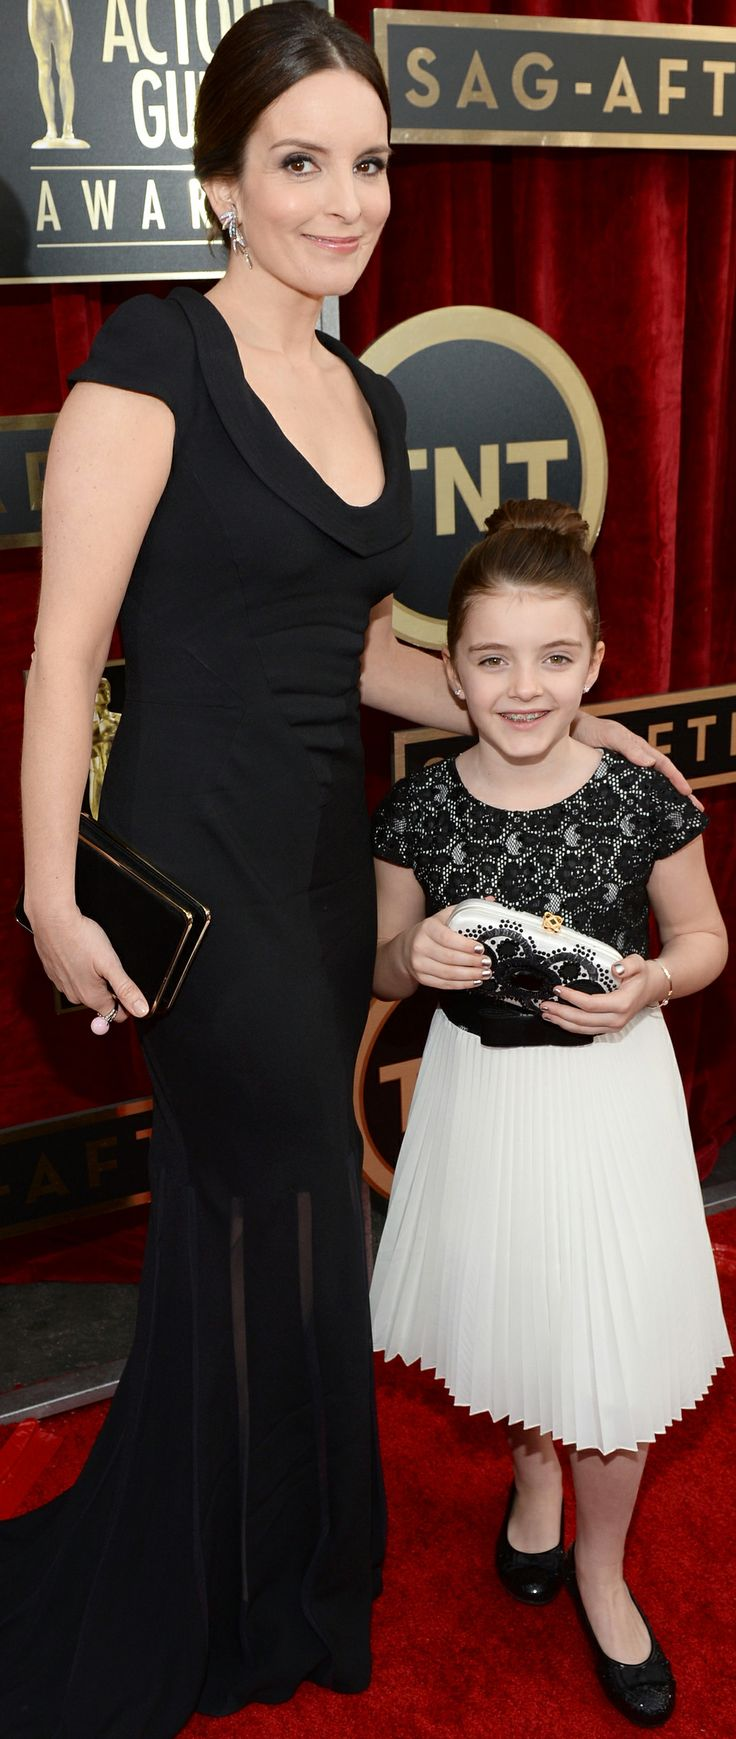 Tina Fey and her daughter Alice walked the SAG Awards red carpet together.